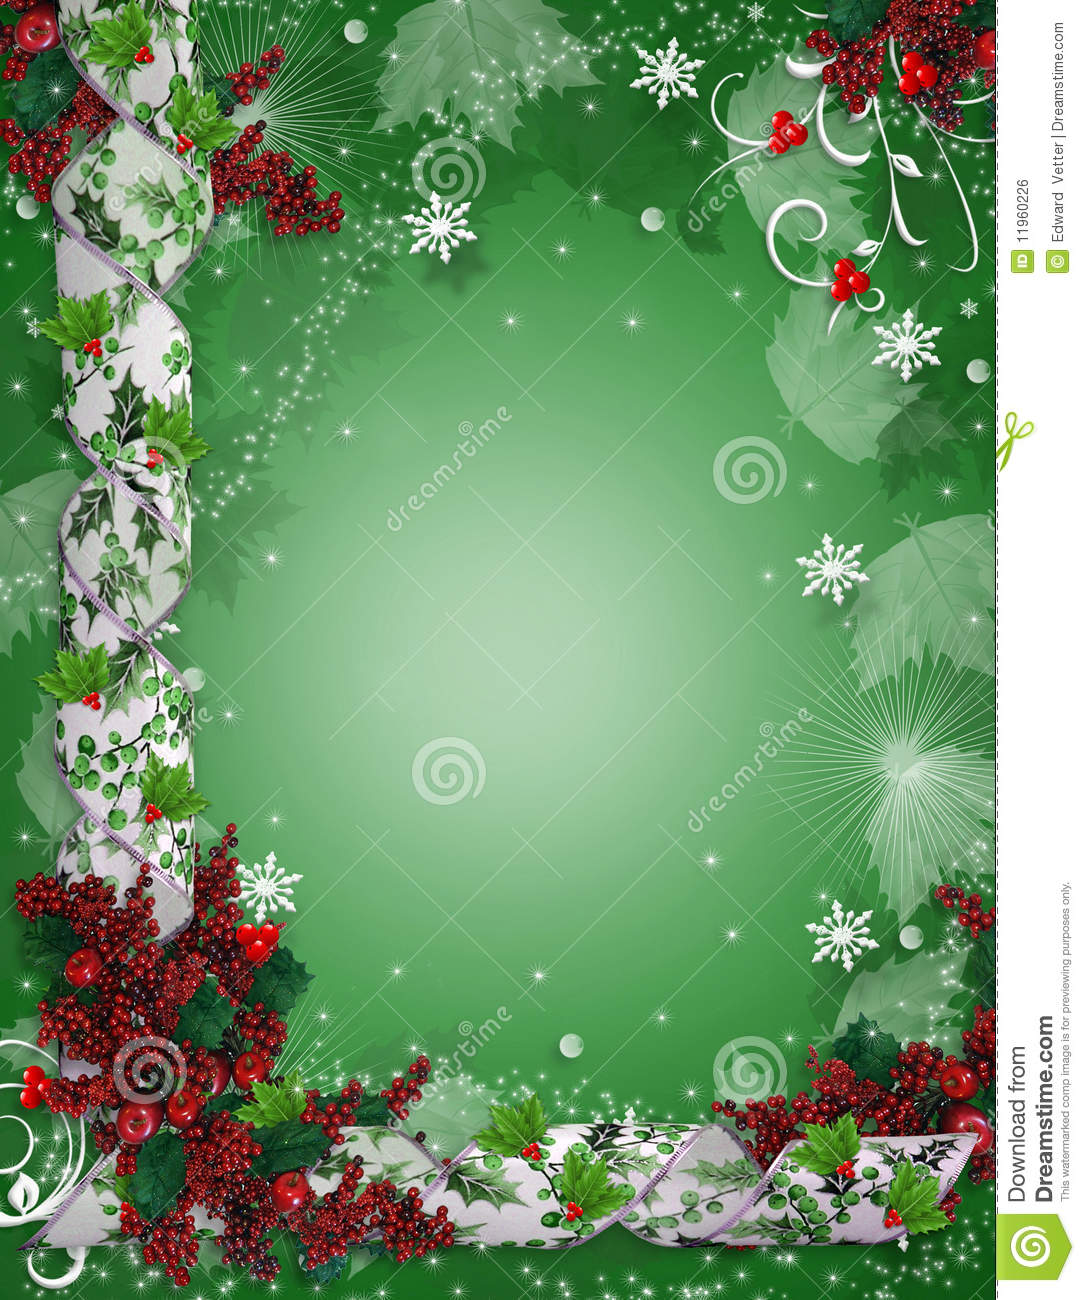 Christmas Border Ribbons Elegant Holly Amazing Blank Christmas